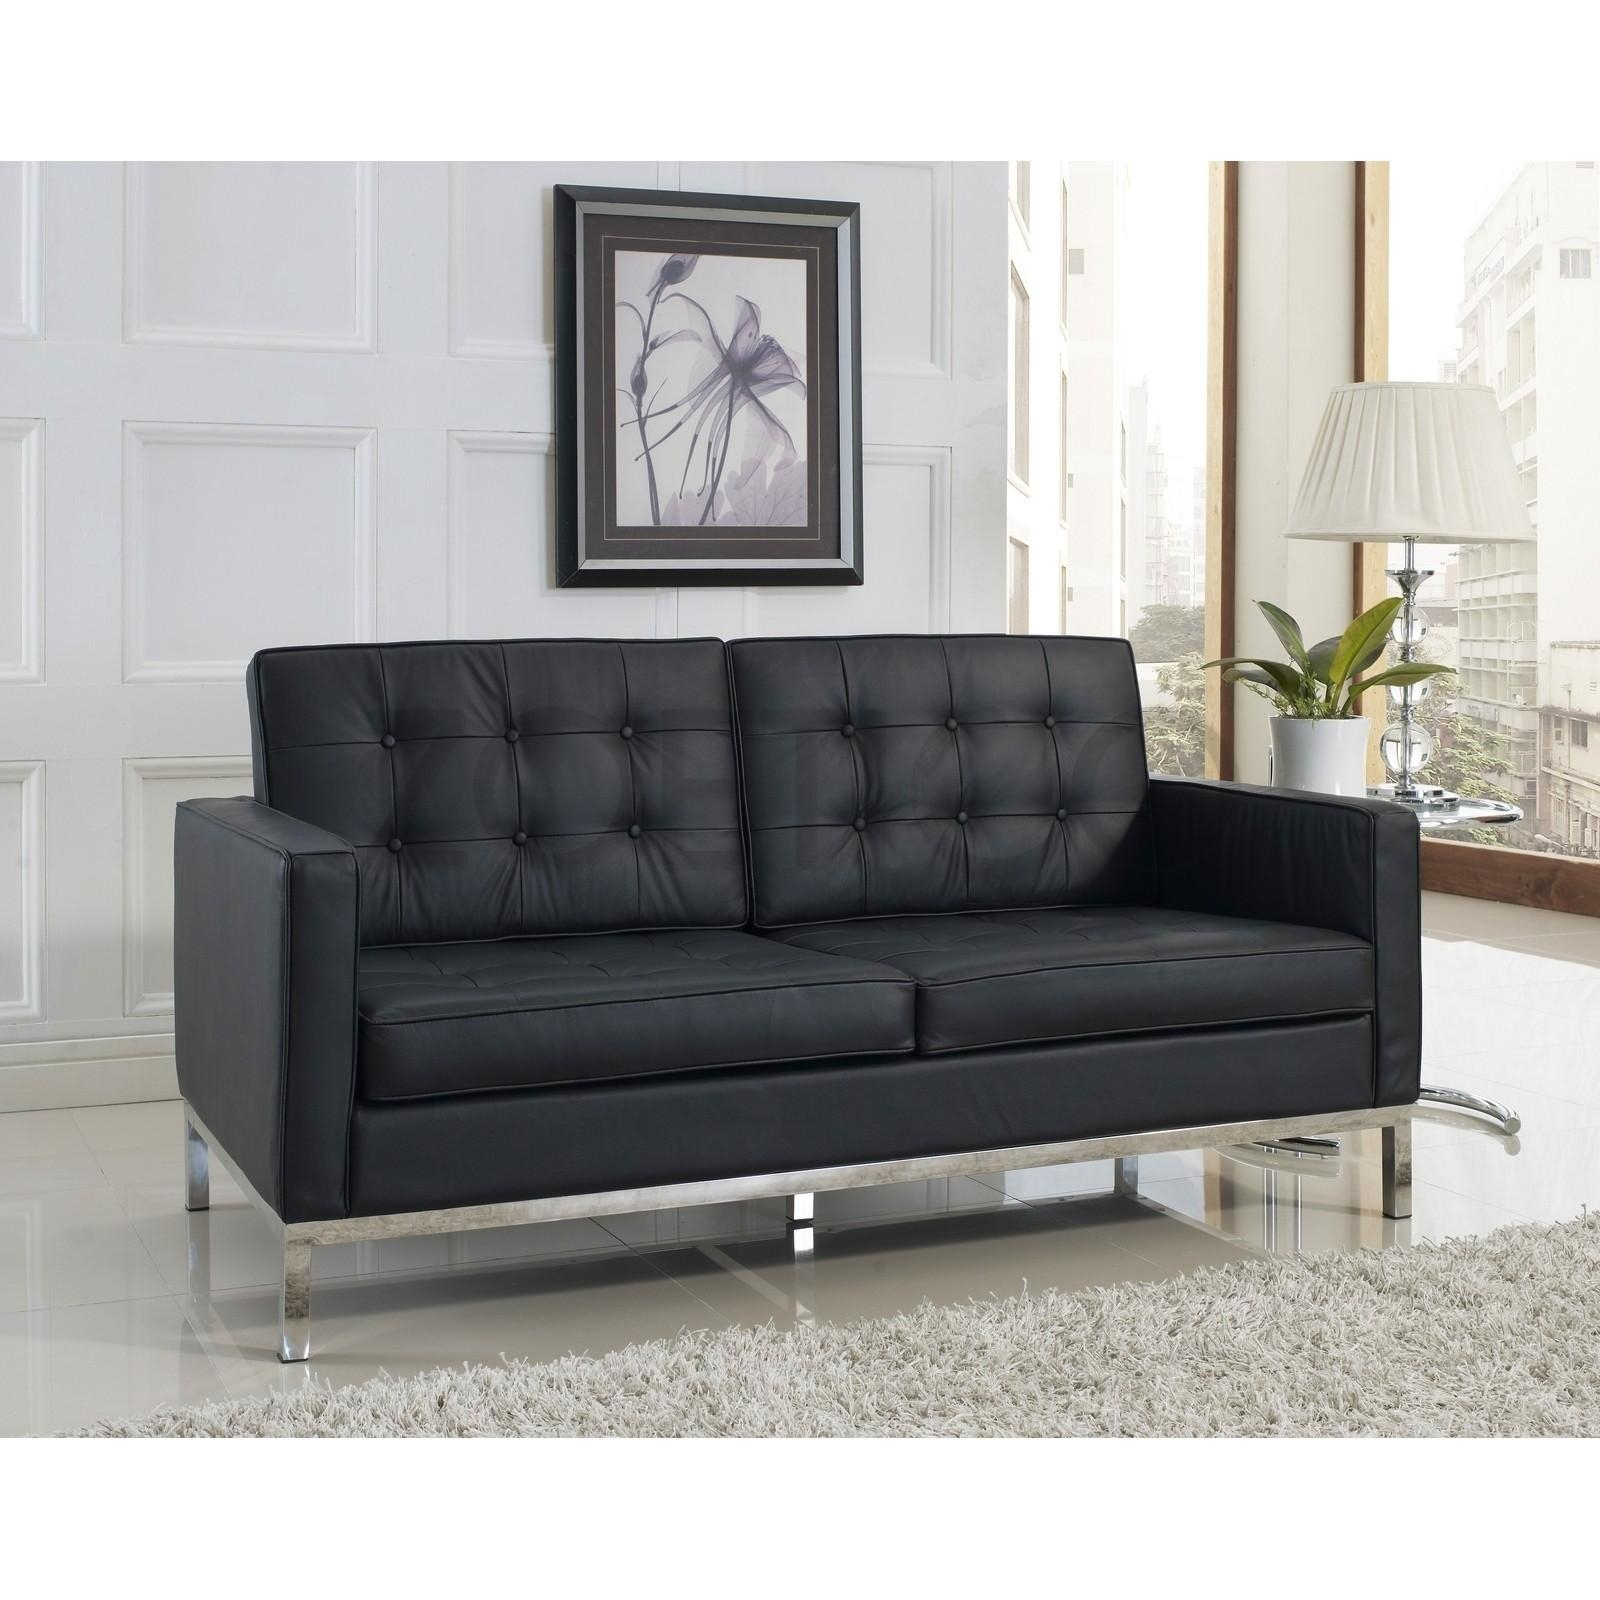 Sofas Center : Florence Knoll Sofa Best Reproduction Chaise Within Florence Sofas (View 7 of 20)